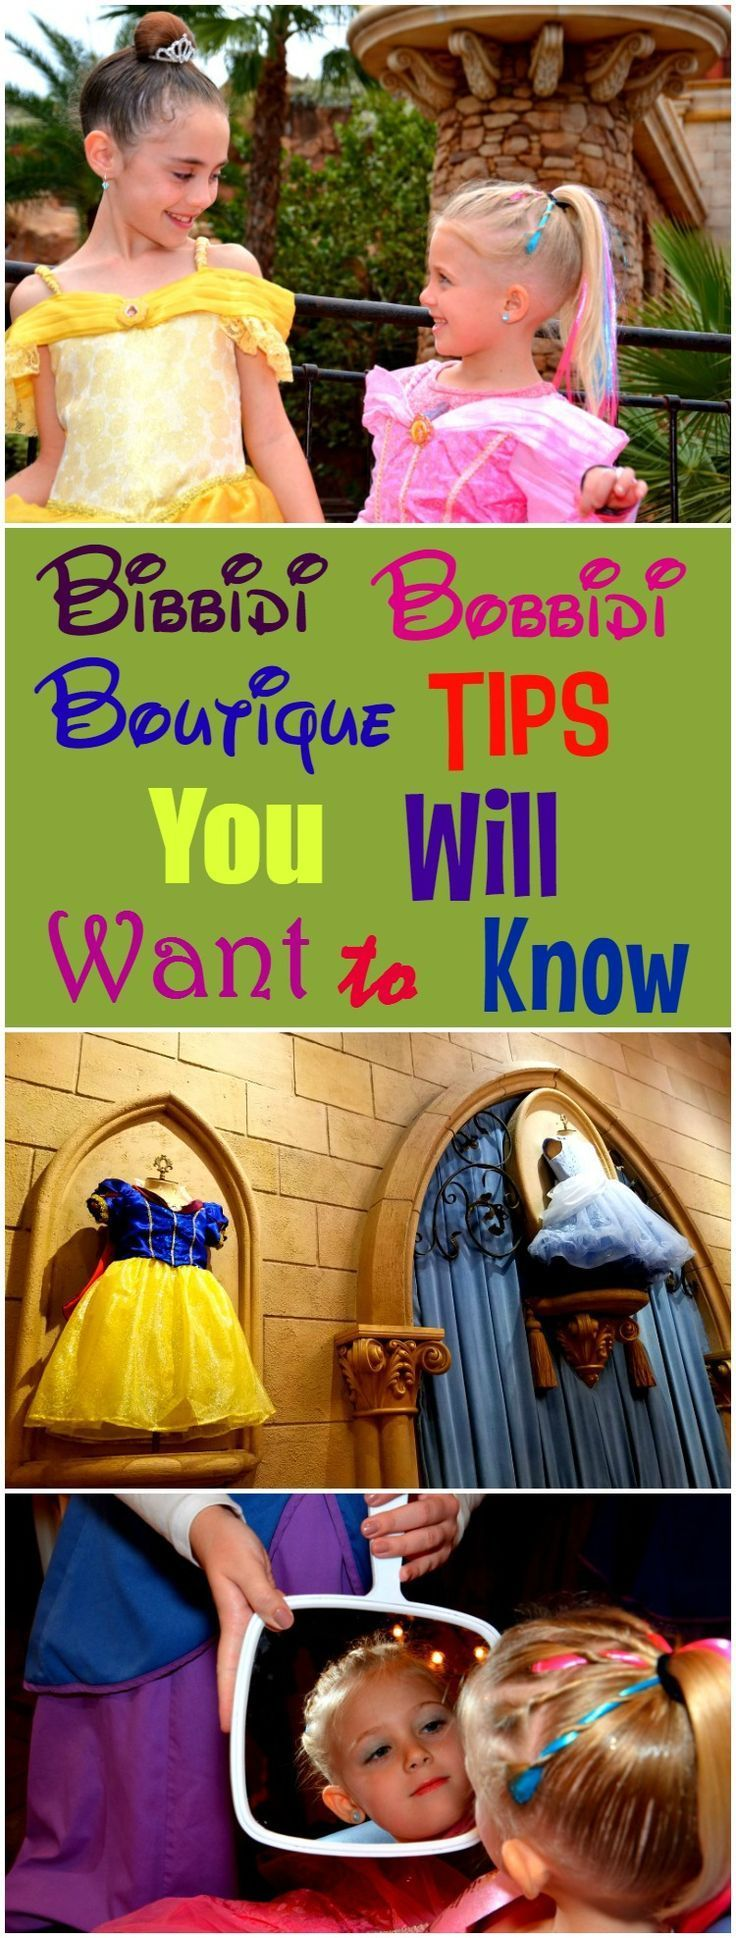 A list of tips that will help you save time and money while at Bibbidi Bobbidi Boutique at Walt Disney World.